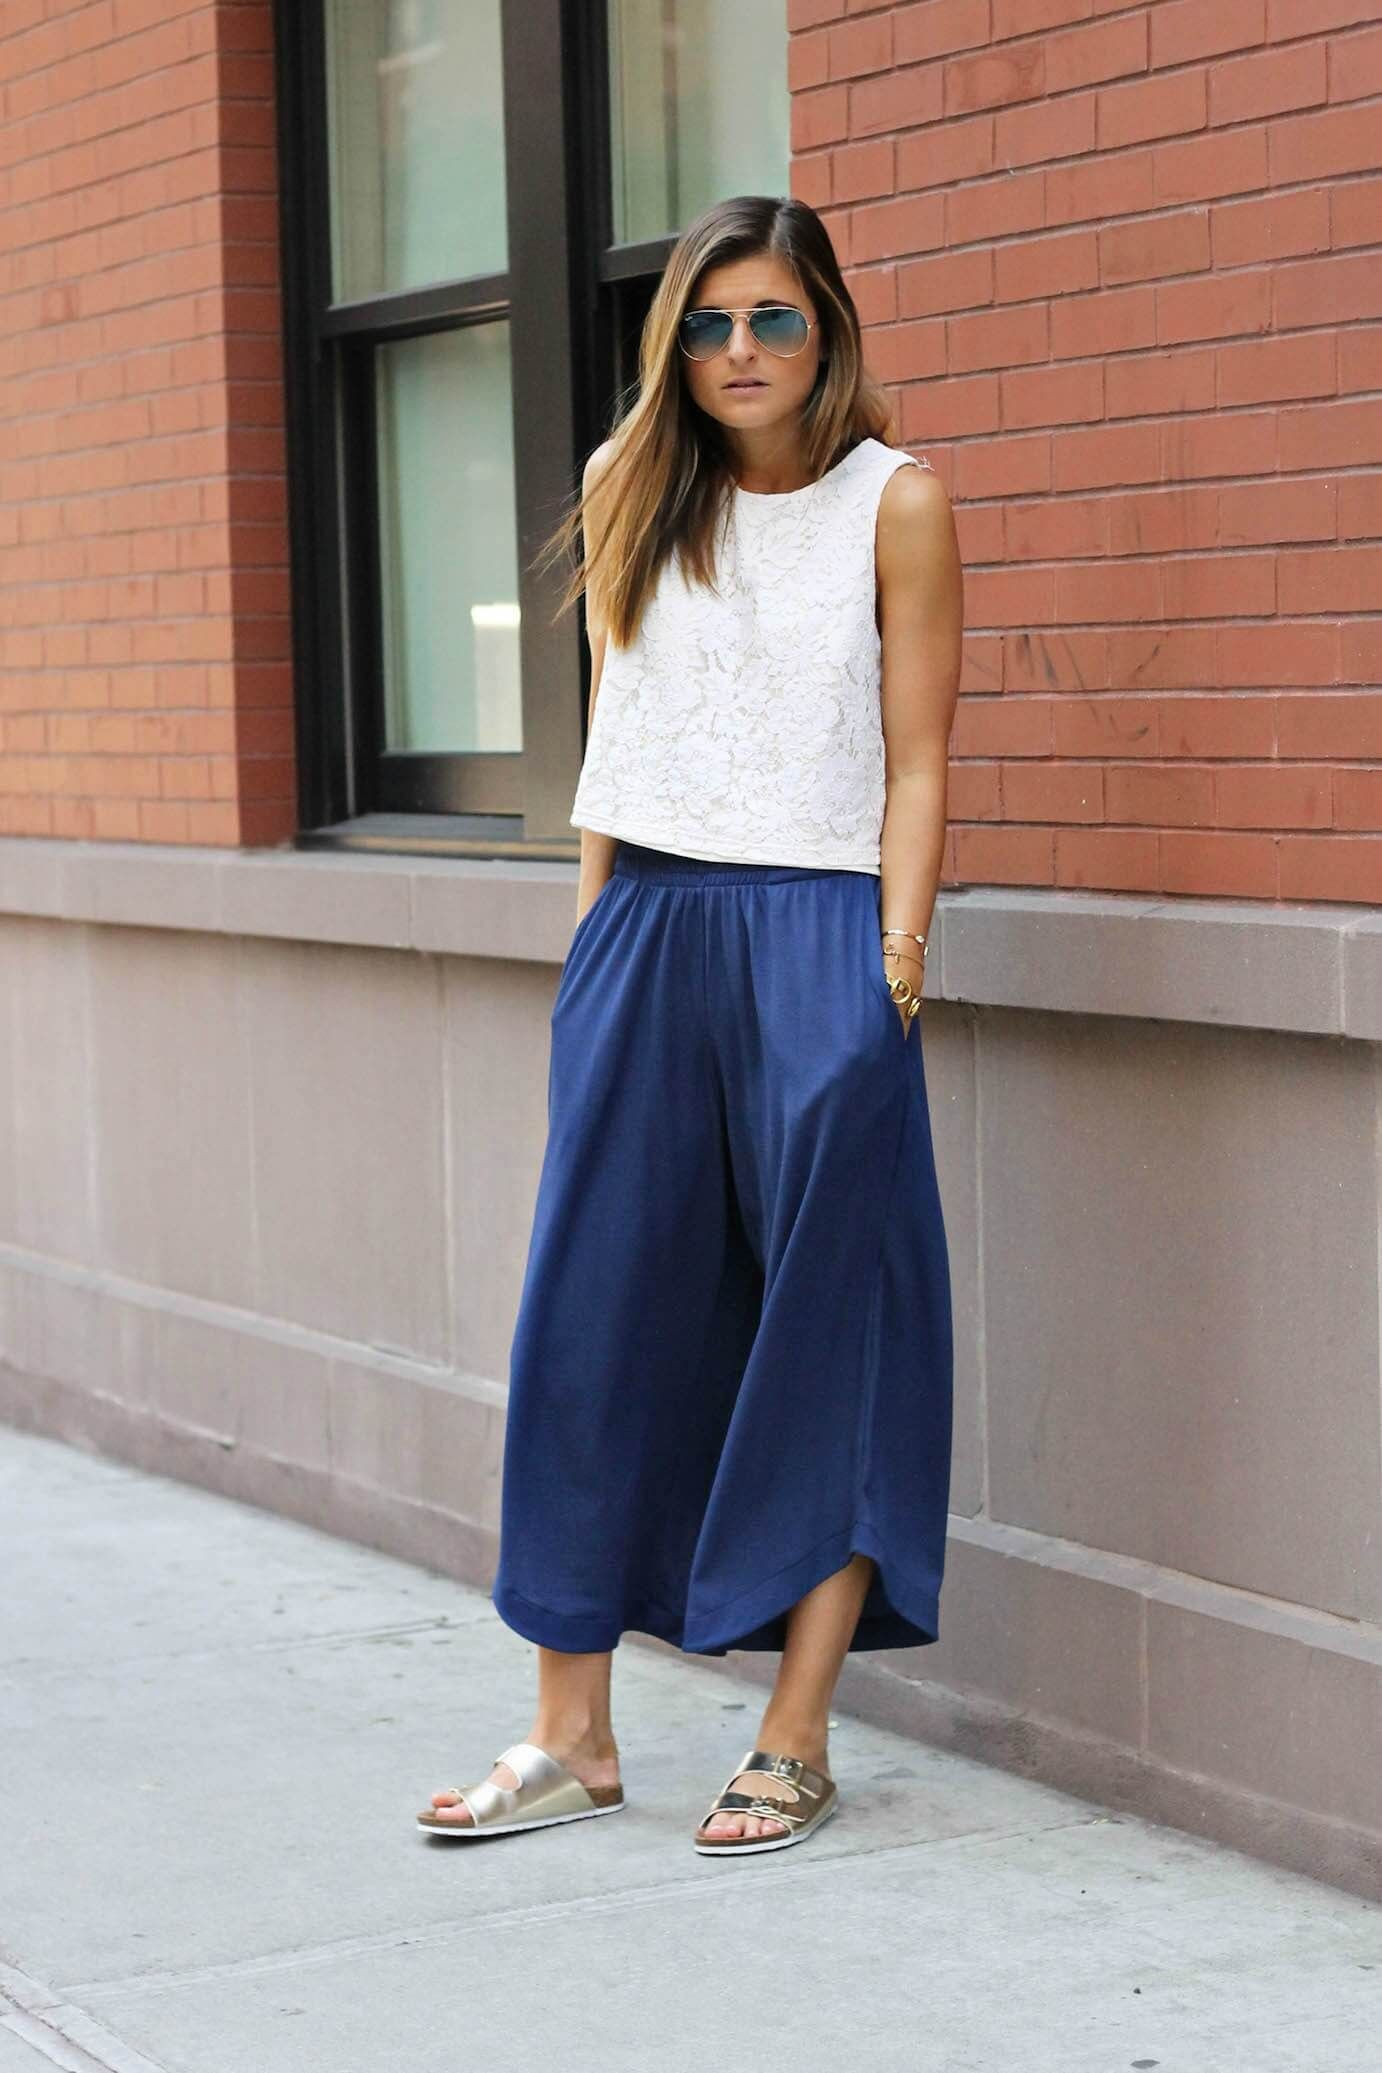 21 Relaxed Outfit Ideas With Straw Bags recommend